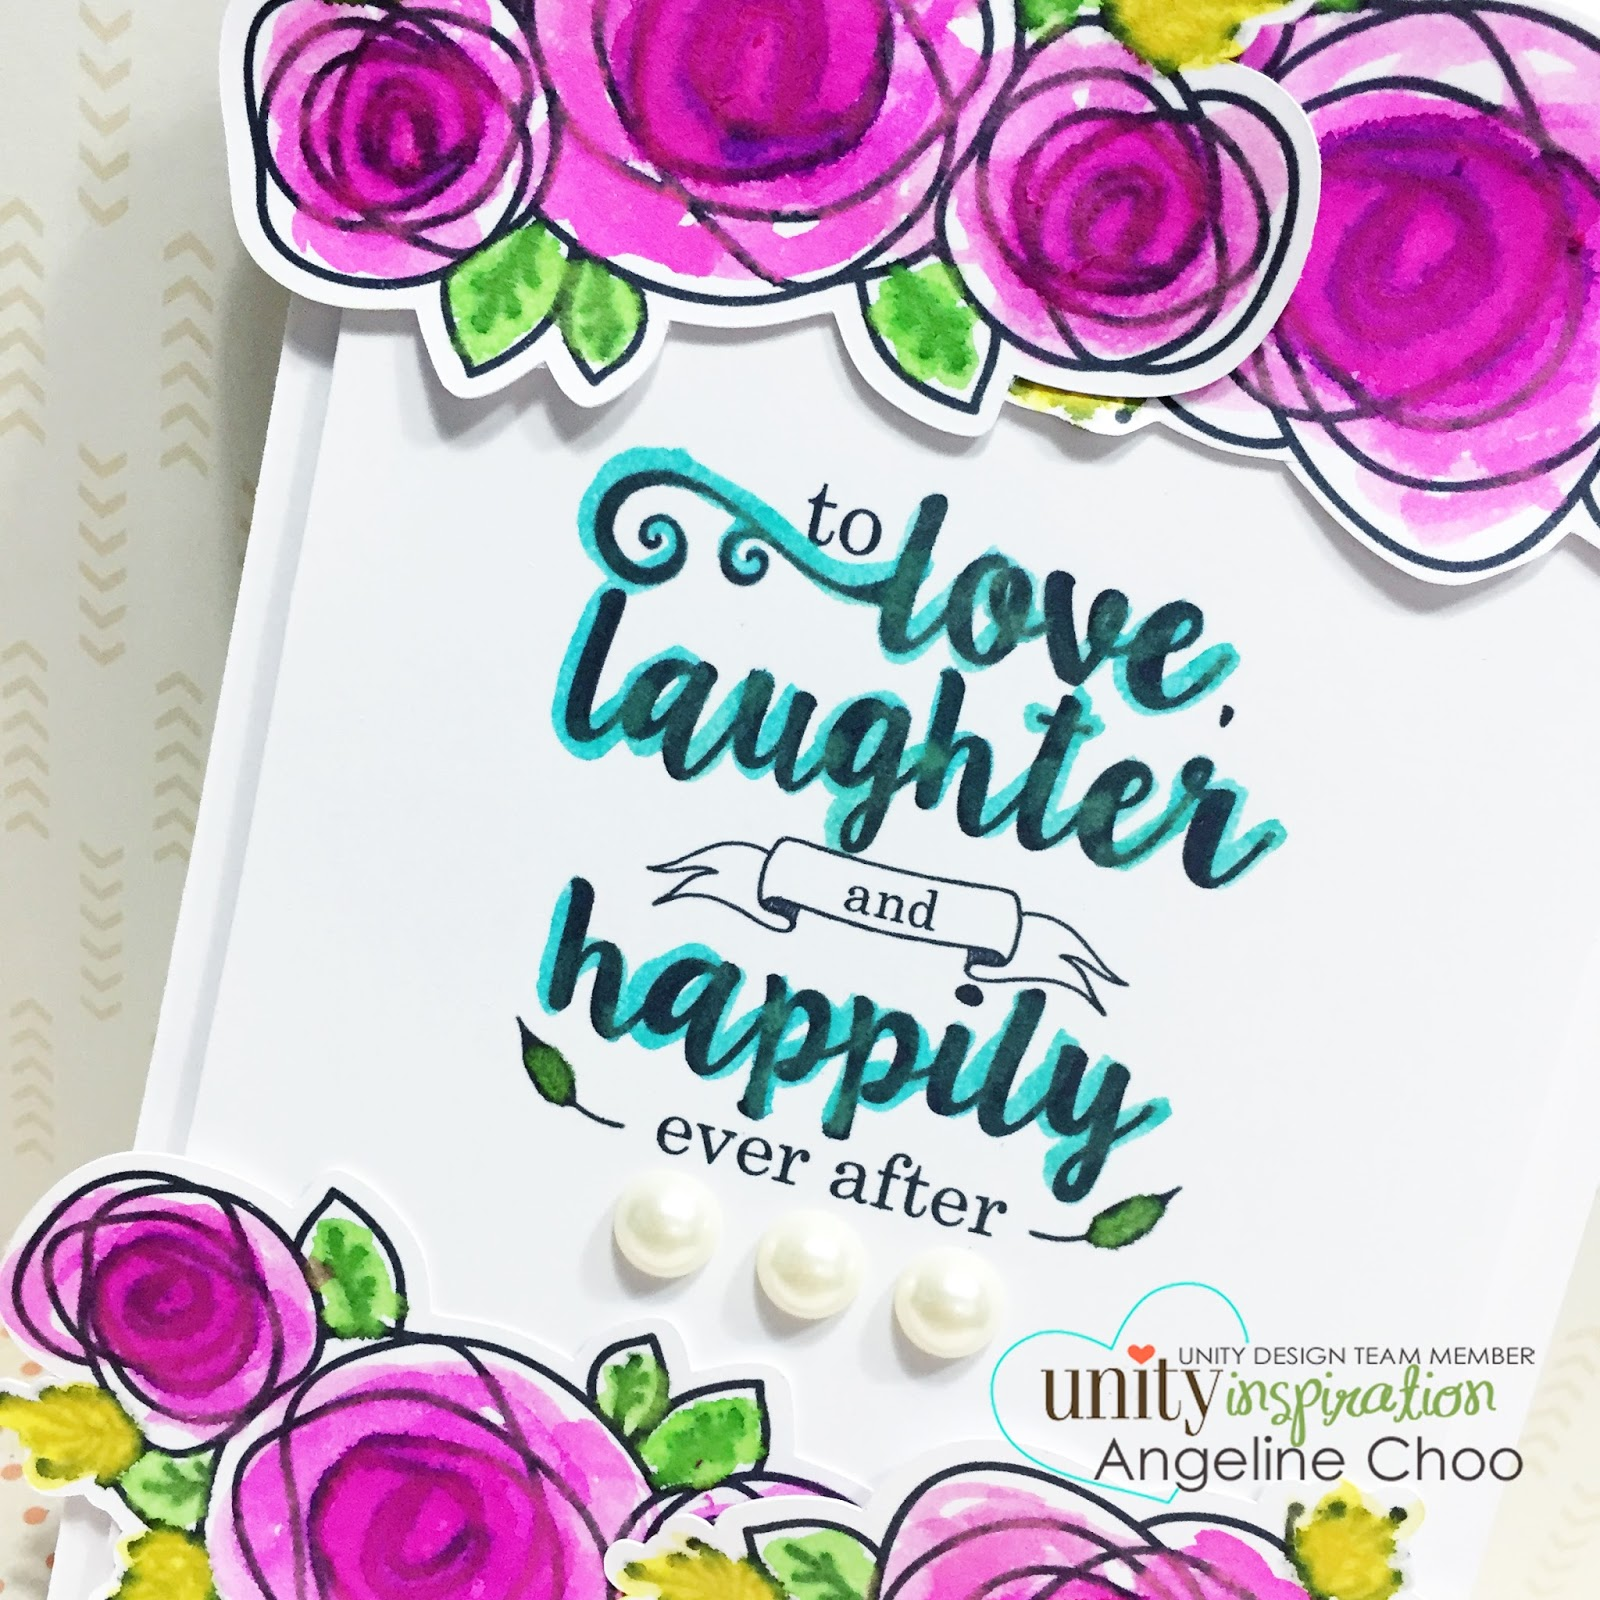 ScrappyScrappy: Love, laughter and happily ever after #scrappyscrappy #unitystamp #card #dylusions #stamp